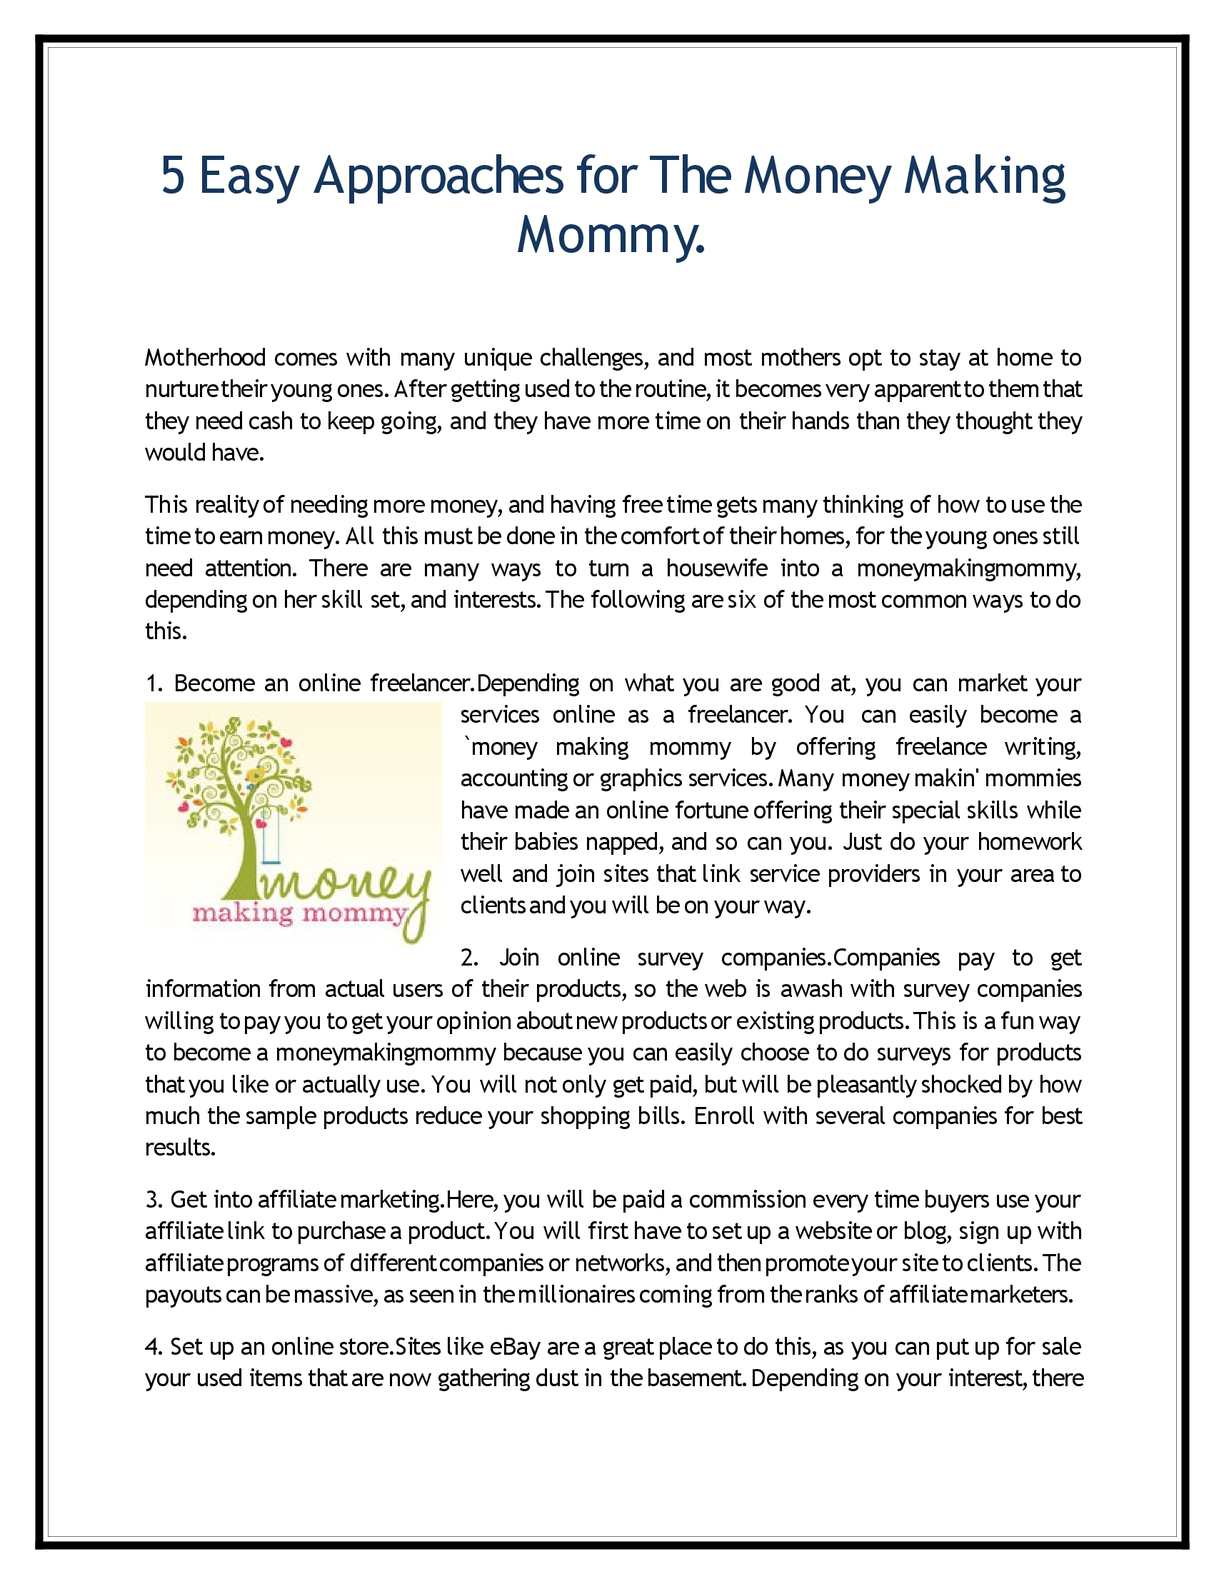 Calameo 5 Easy Approaches For The Money Making Mommy